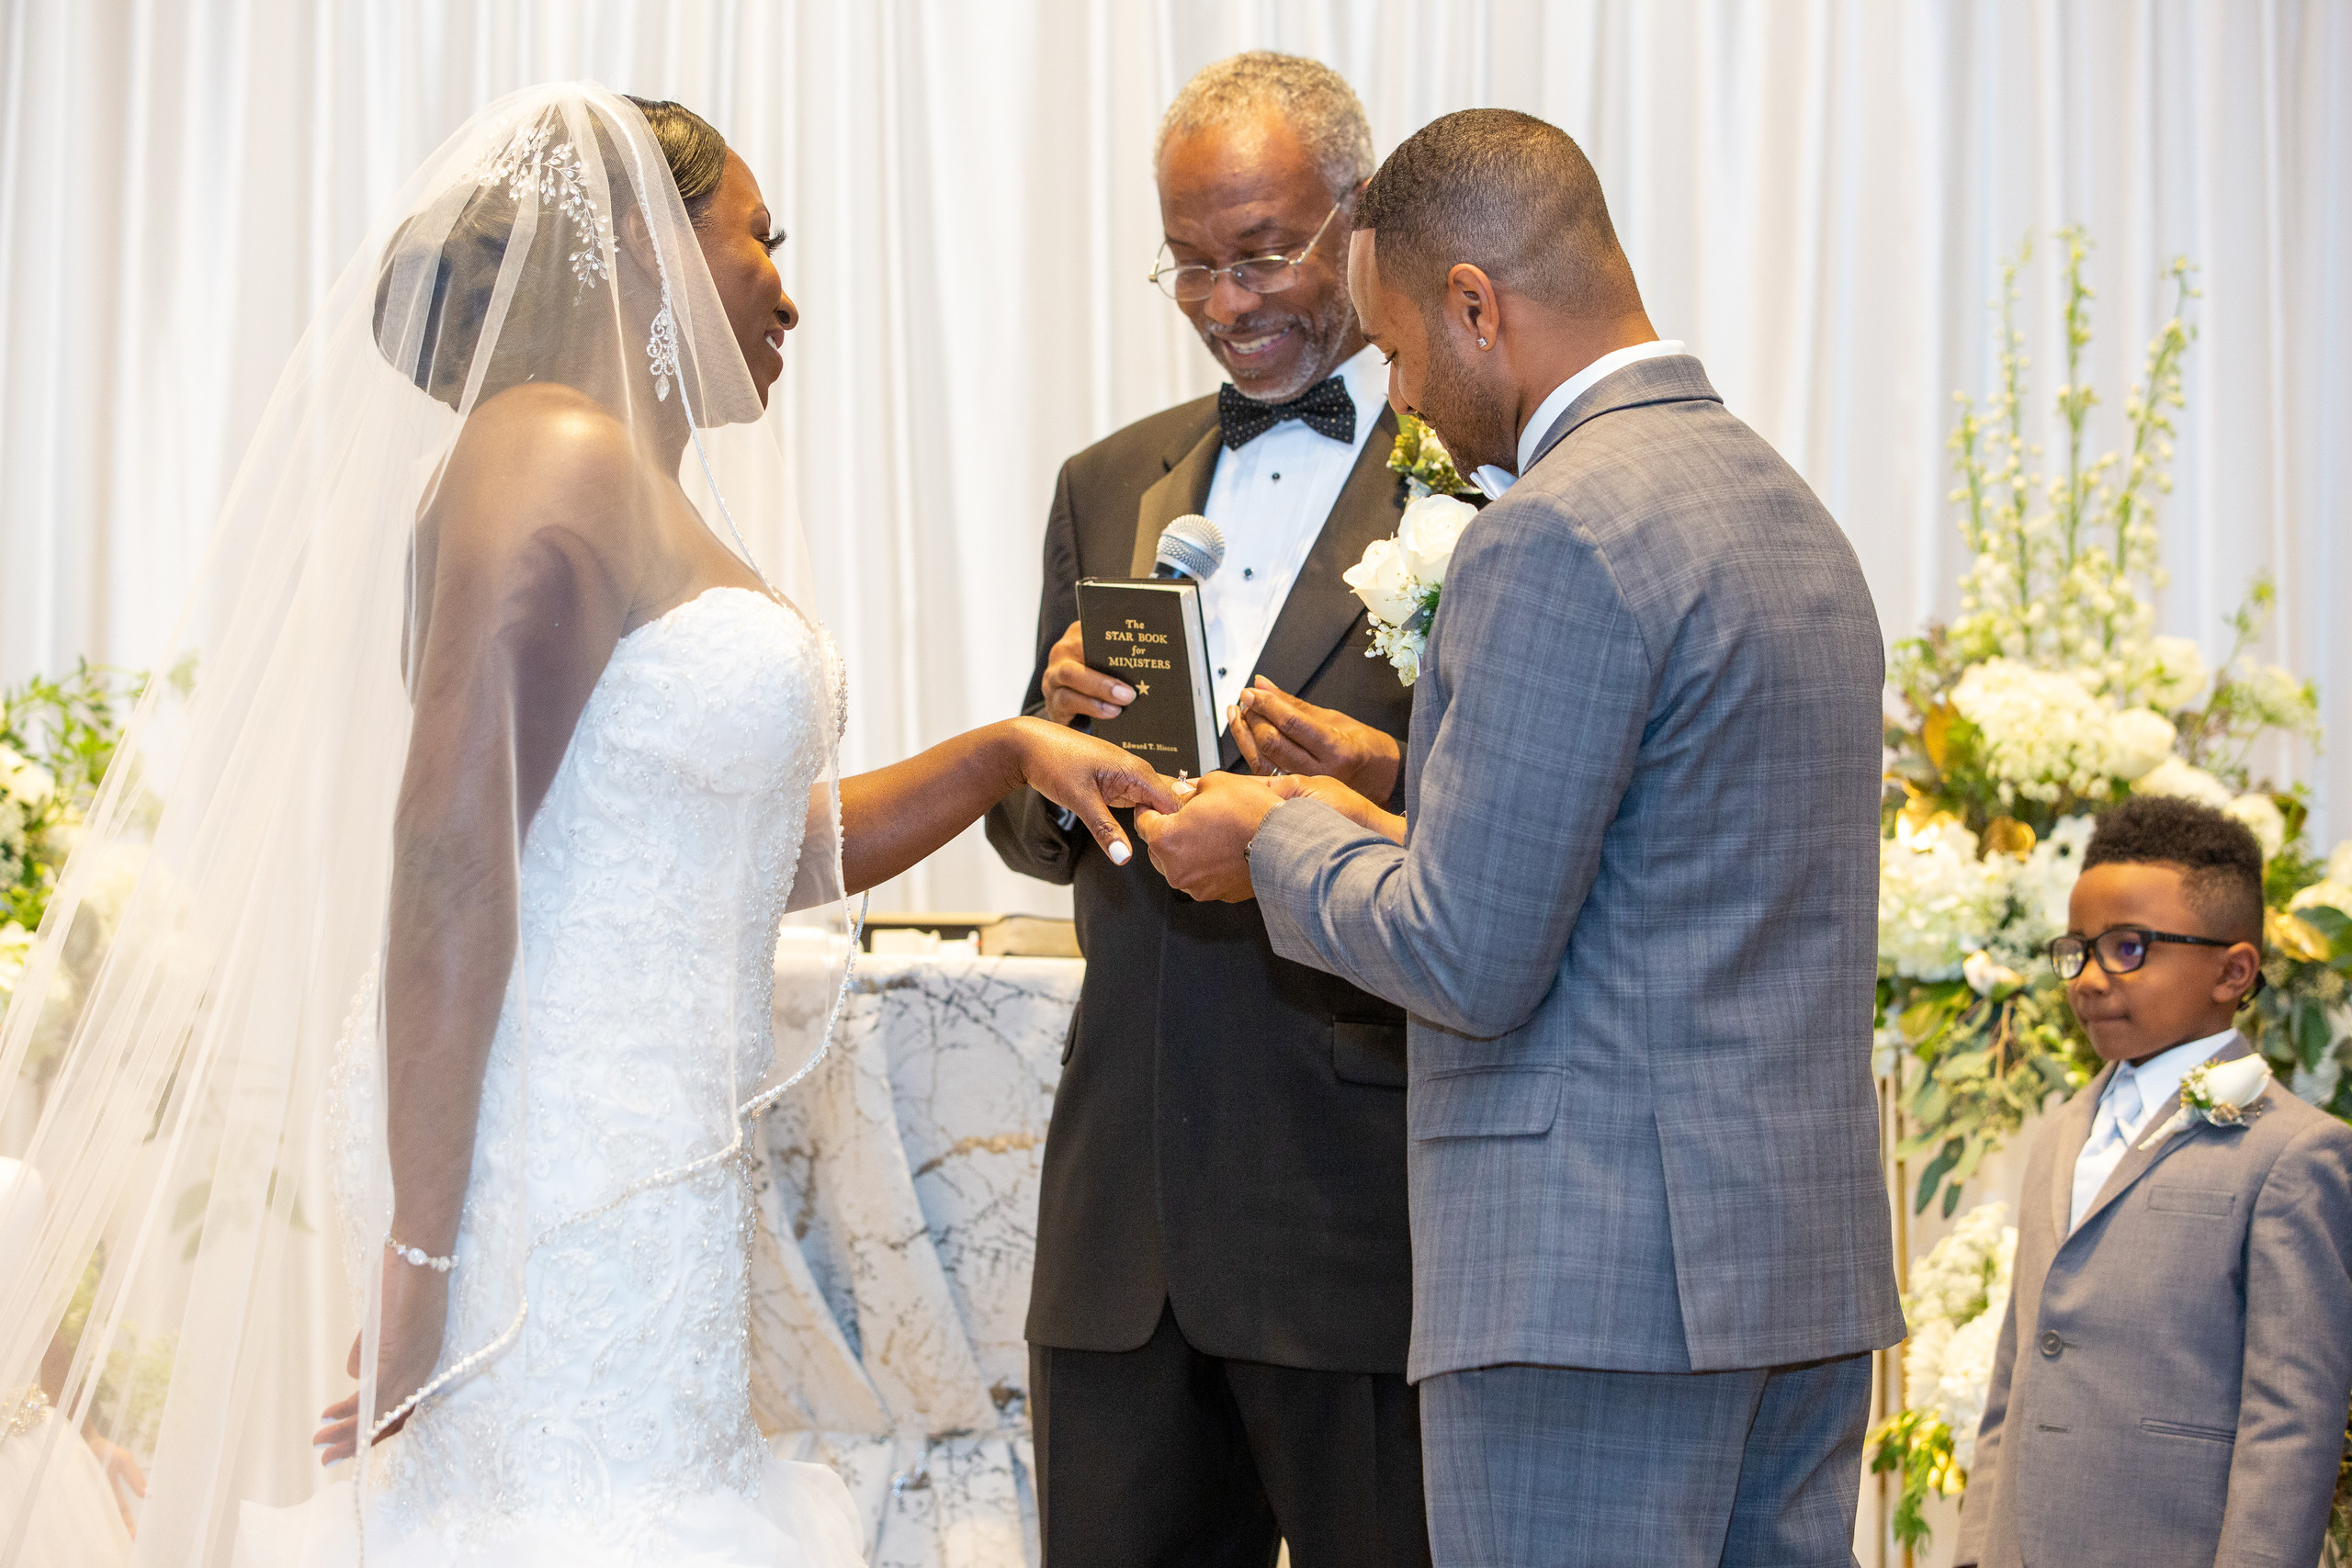 The groom places the bride's wedding band on her hand during the wedding ceremony at the Hilton Main in Norfolk, Virginia.